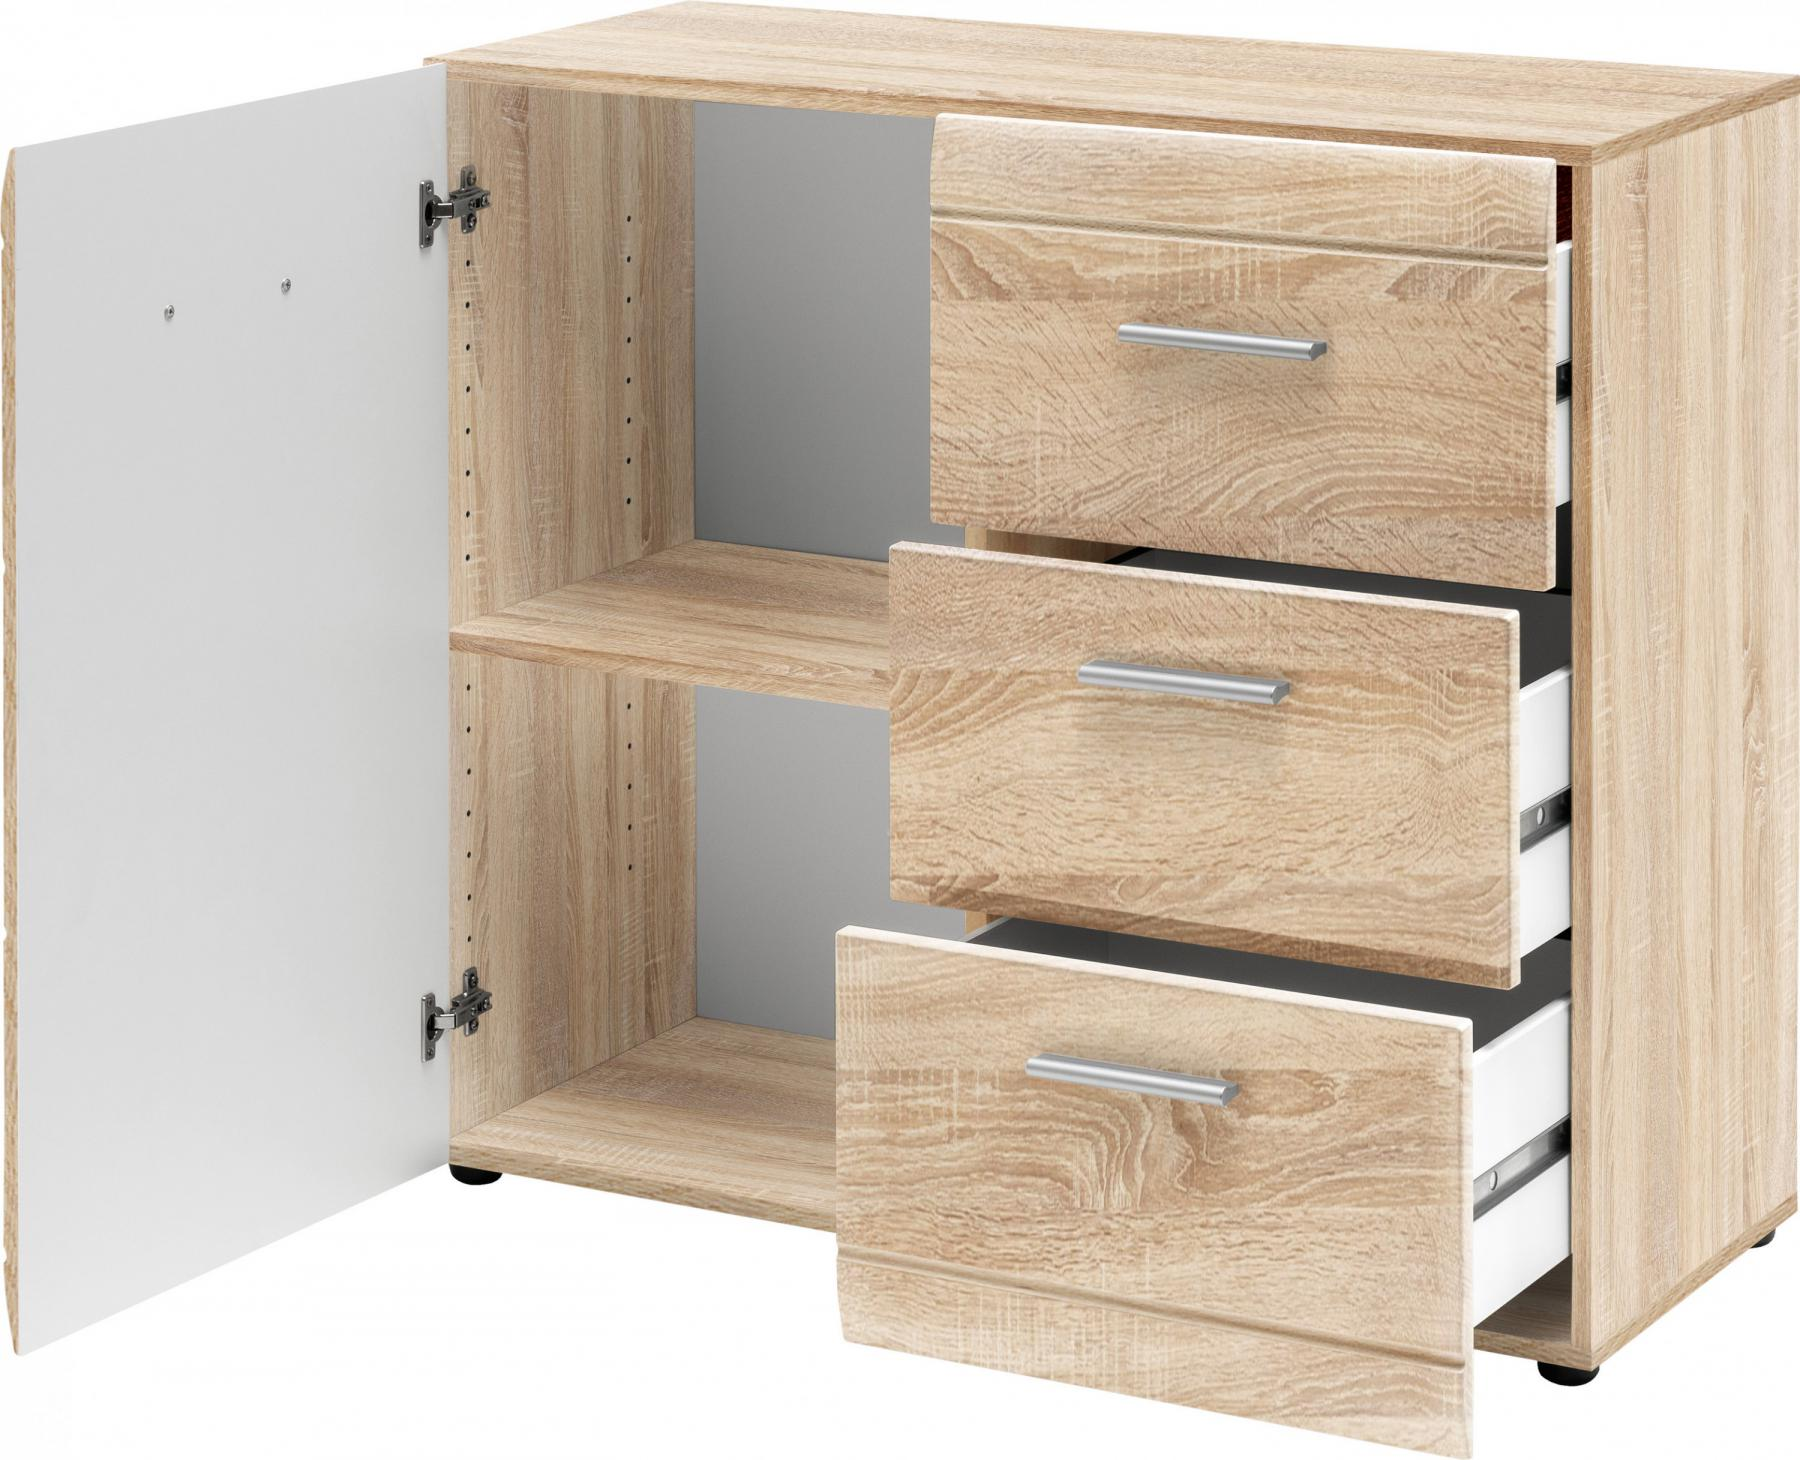 aktenschrank b roschrank universal ordner akten office schrank m bel eiche wei kaufen bei dtg. Black Bedroom Furniture Sets. Home Design Ideas